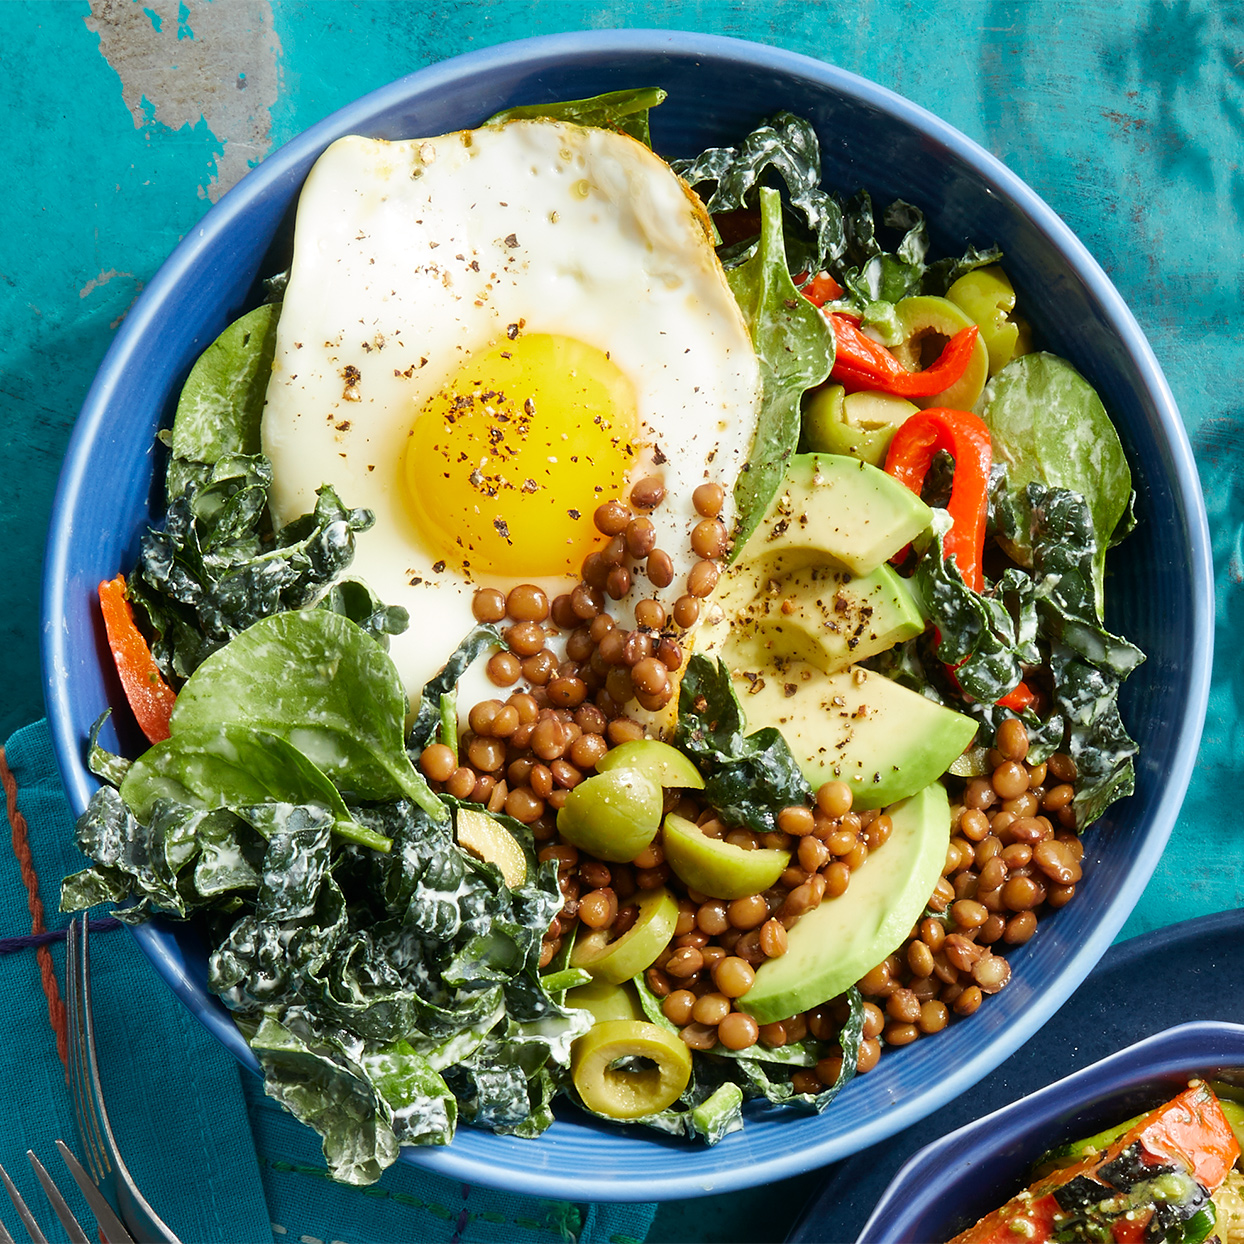 Lentils are a quick and easy protein. We like French green lentils, which hold their shape when cooked. Source: Diabetic Living Magazine, Summer 2020